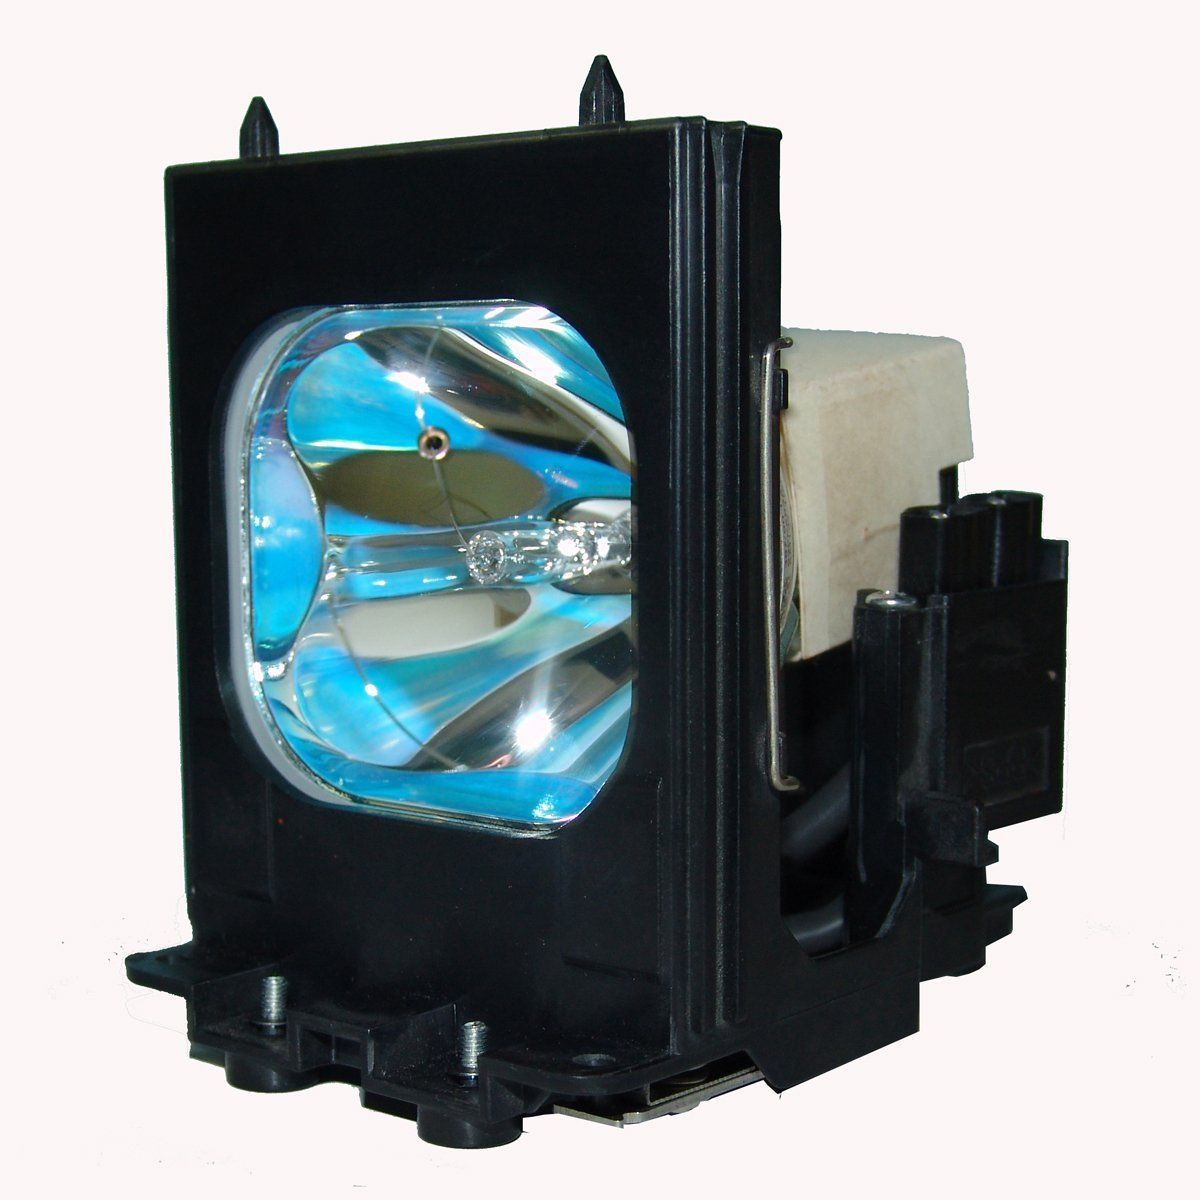 Projector Lamp Bulb DT00681 DT-00681 for HITACHI CP-X1230 CP-X1230W CP- X1250 CP- X1250J CP-X1250W with housing original projector lamp dt00681 for cp x1230 cp x1230w cp x1250 cp x1250j cp x1250w